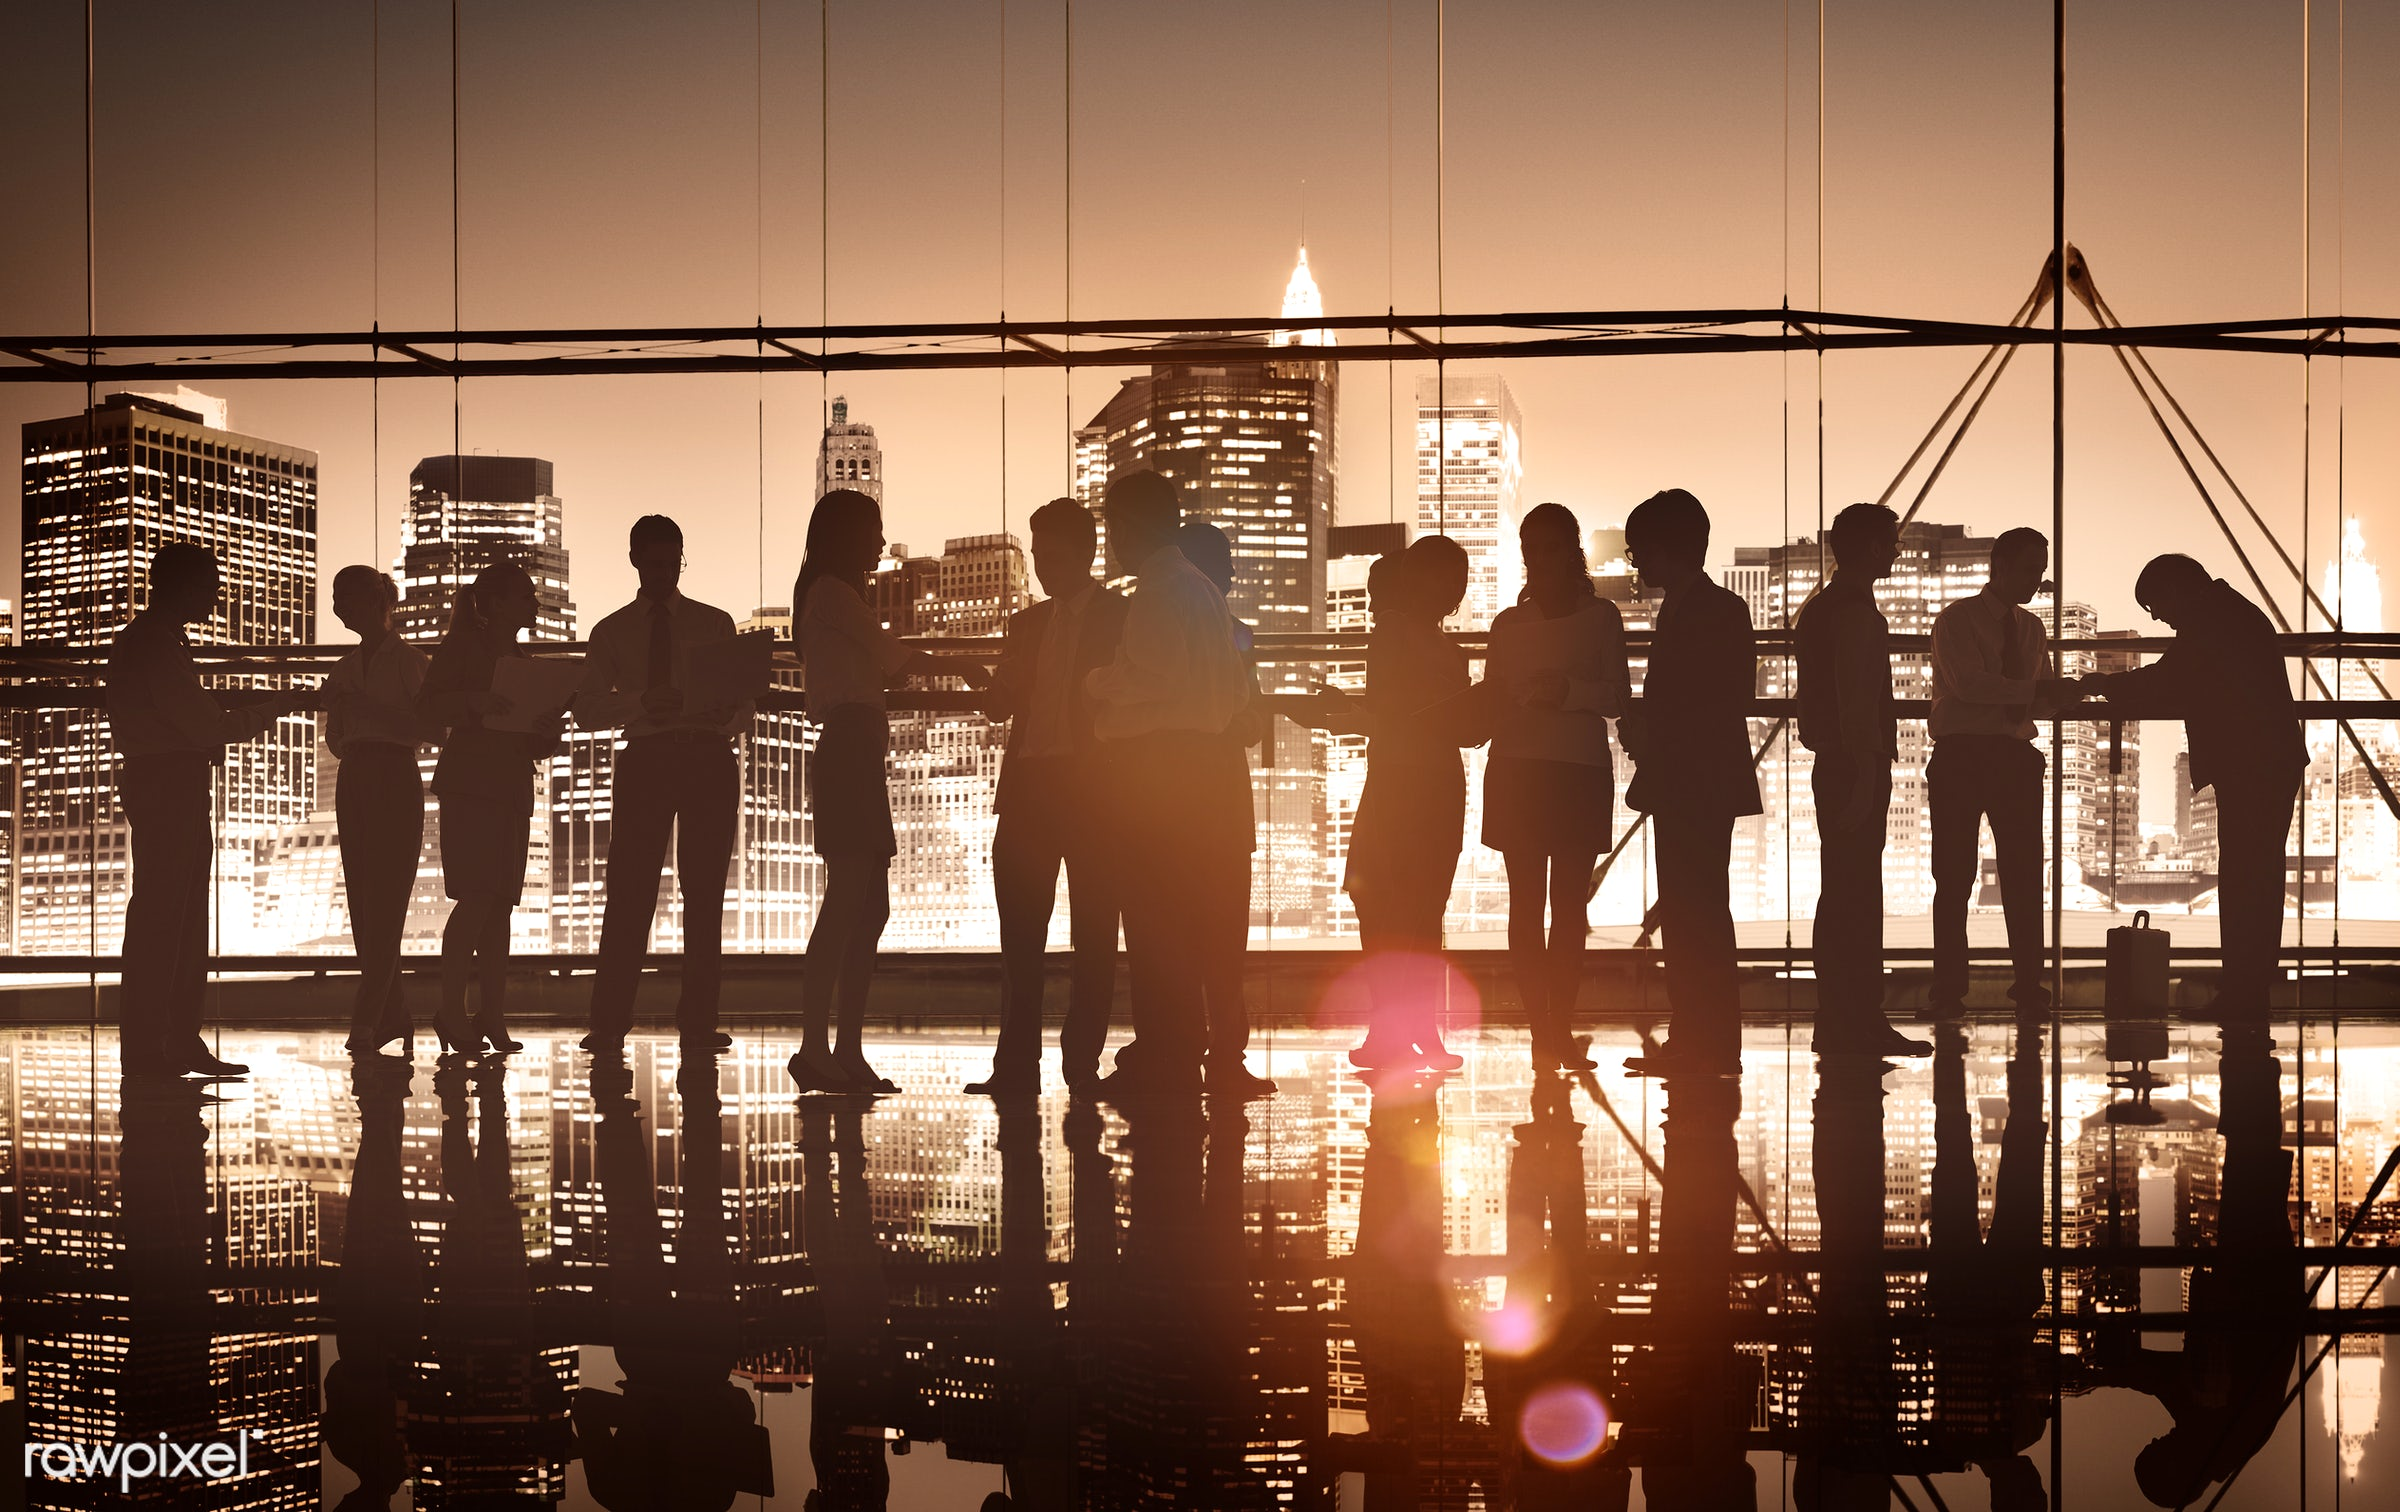 abstract, back lit, bowing, brainstorming, building, business, business people, businessmen, businesswomen, city, cityscape...